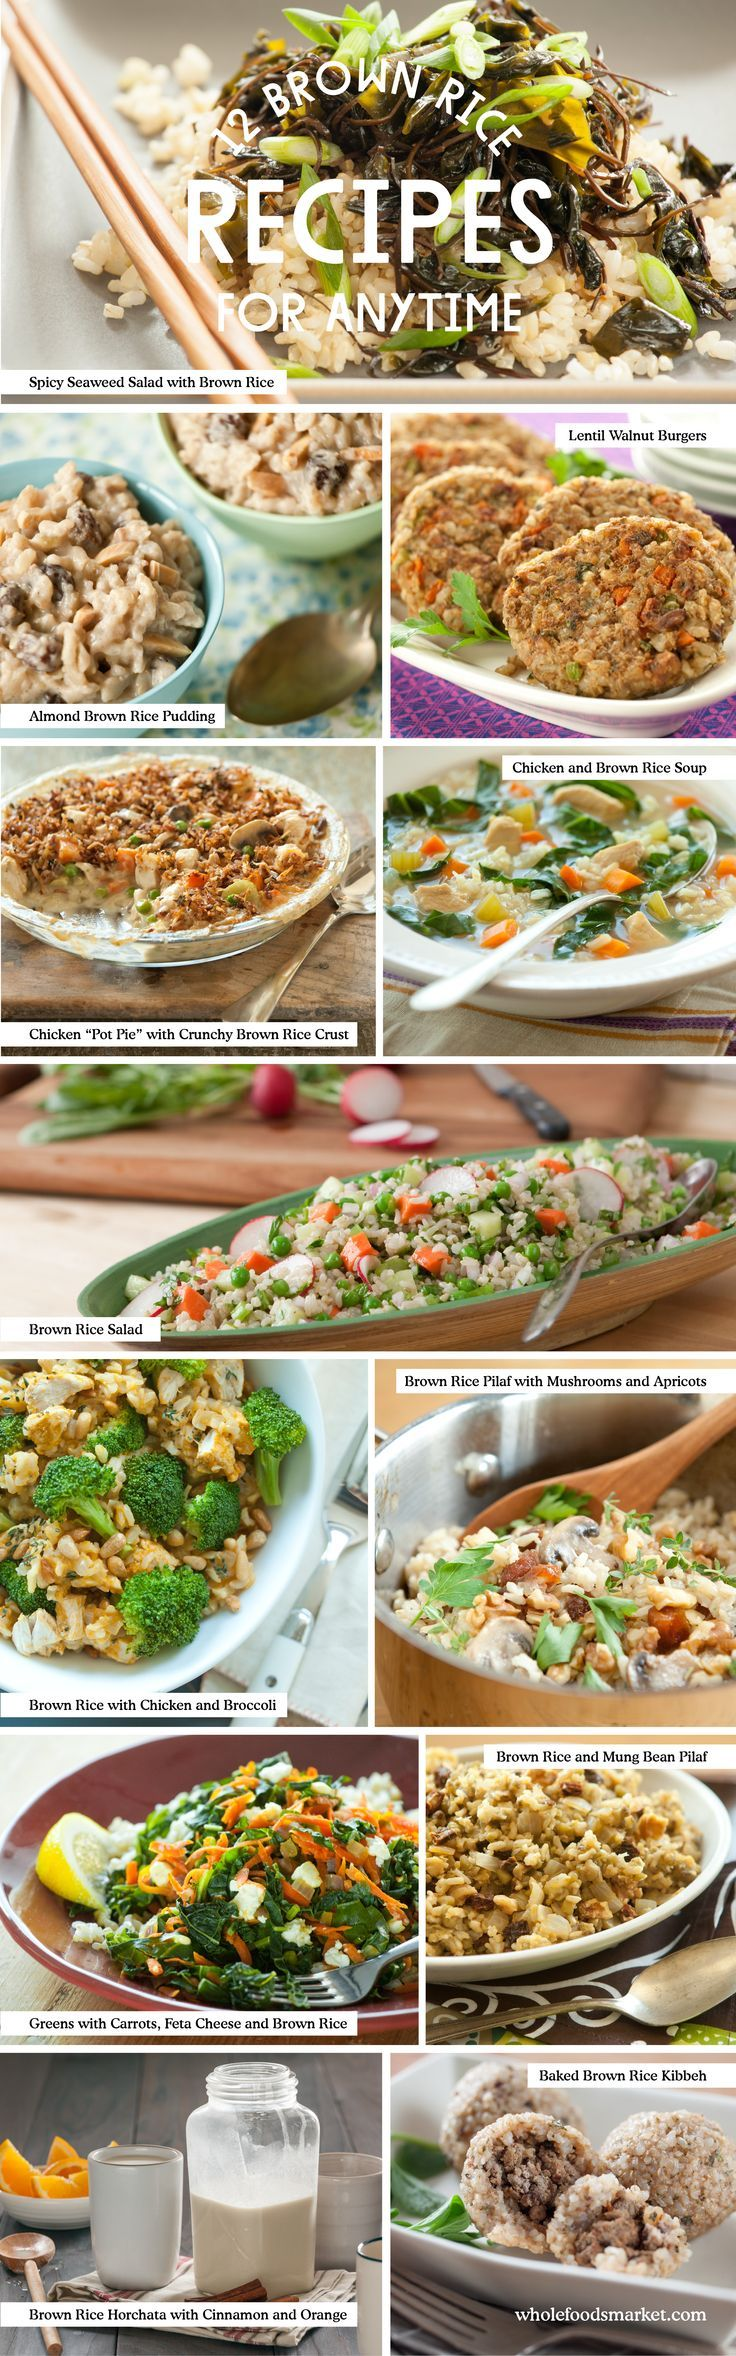 "12 Recipes for Brown Rice // Spicy Seaweed Salad with Brown Rice // Almond Brown Rice Pudding // Lentil Walnut Burgers // Chicken ""Pot Pie"" with Crunchy Brown Rice Crust // Chicken and Brown Rice Soup // Brown Rice Salad // Brown Rice Pilaf with Mushrooms and Apricots // Greens with Carrots, Feta Cheese and Brown Rice // Brown Rice with Mung Bean Pilaf // Brown Rice Horchata with Cinnamon and Orange // Baked Brown Rice Kibbeh"